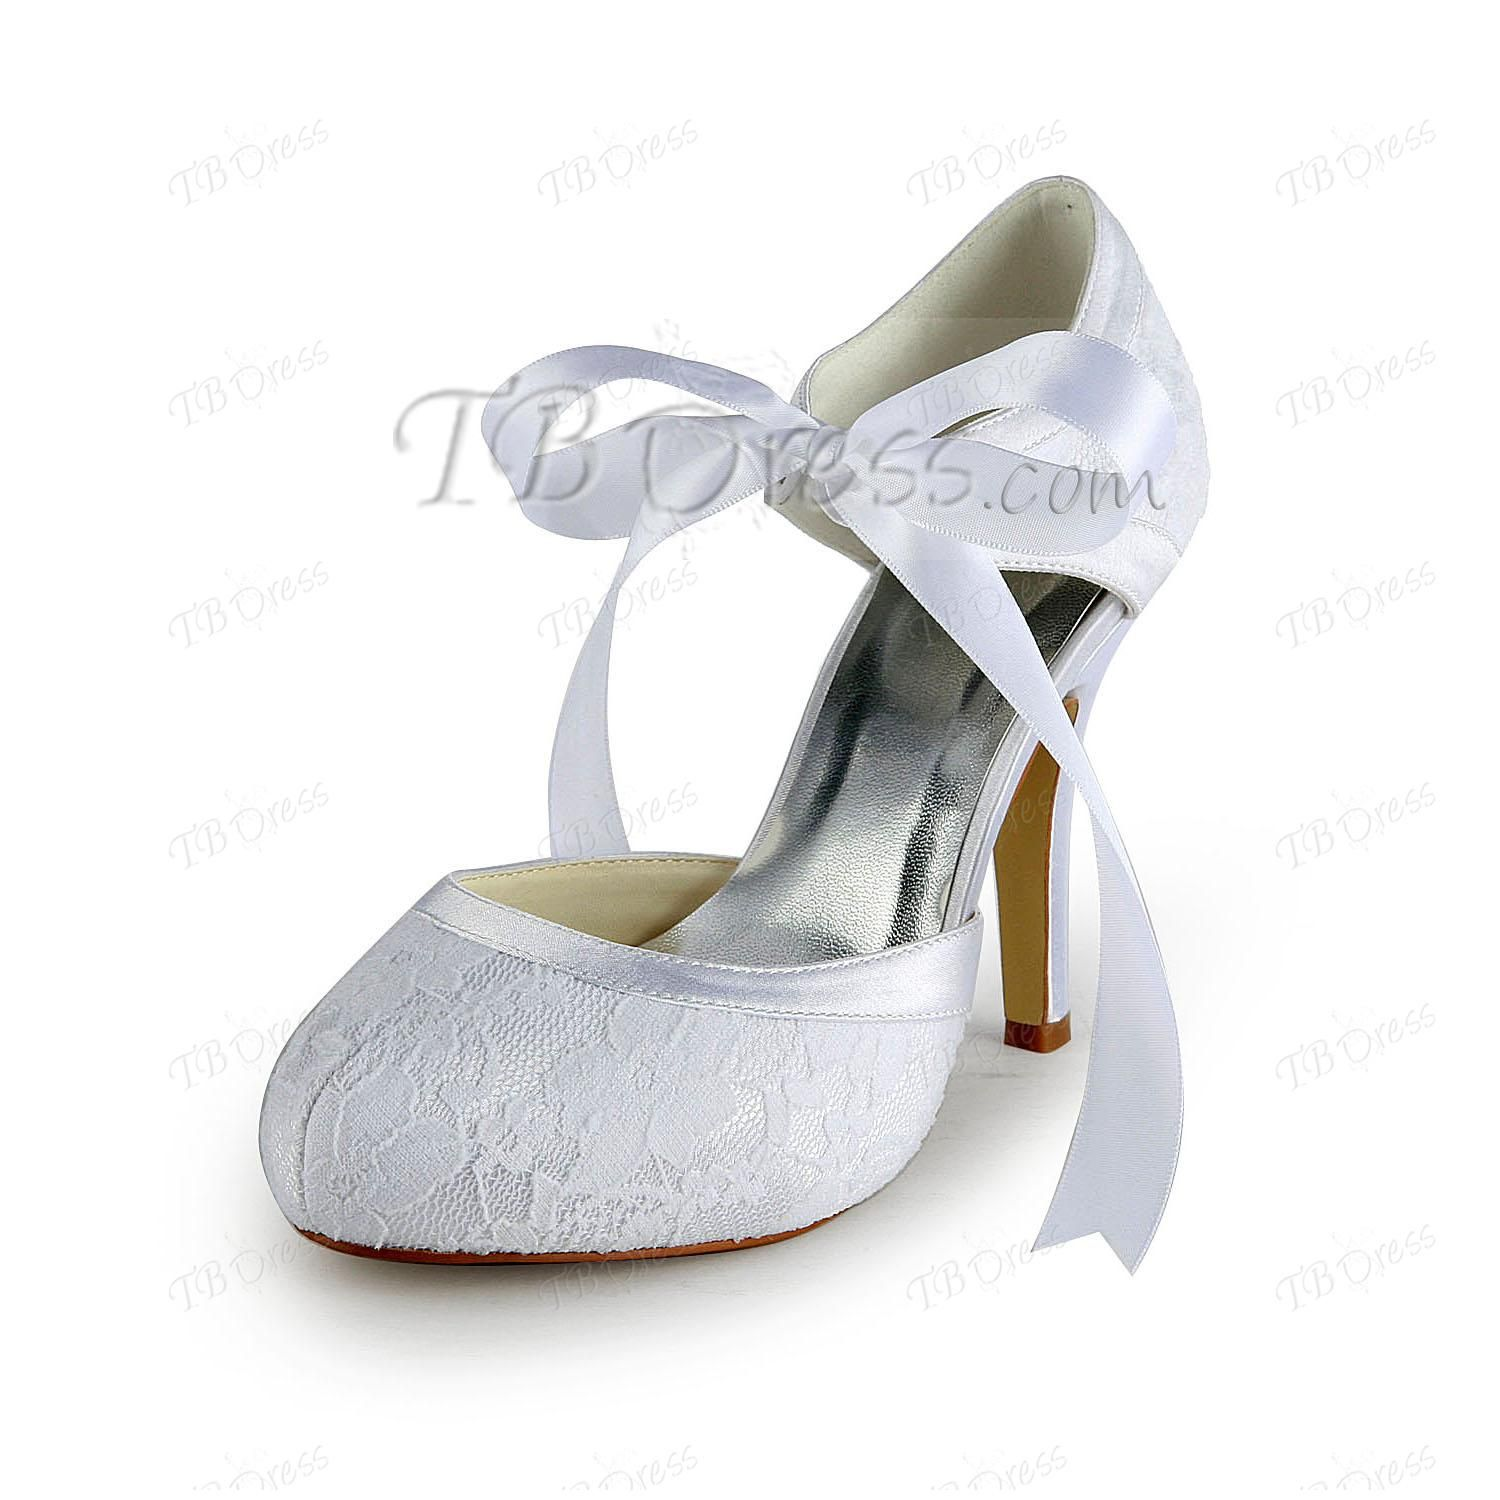 New Stiletto Heels Closed-toe Lace Wedding Shoes